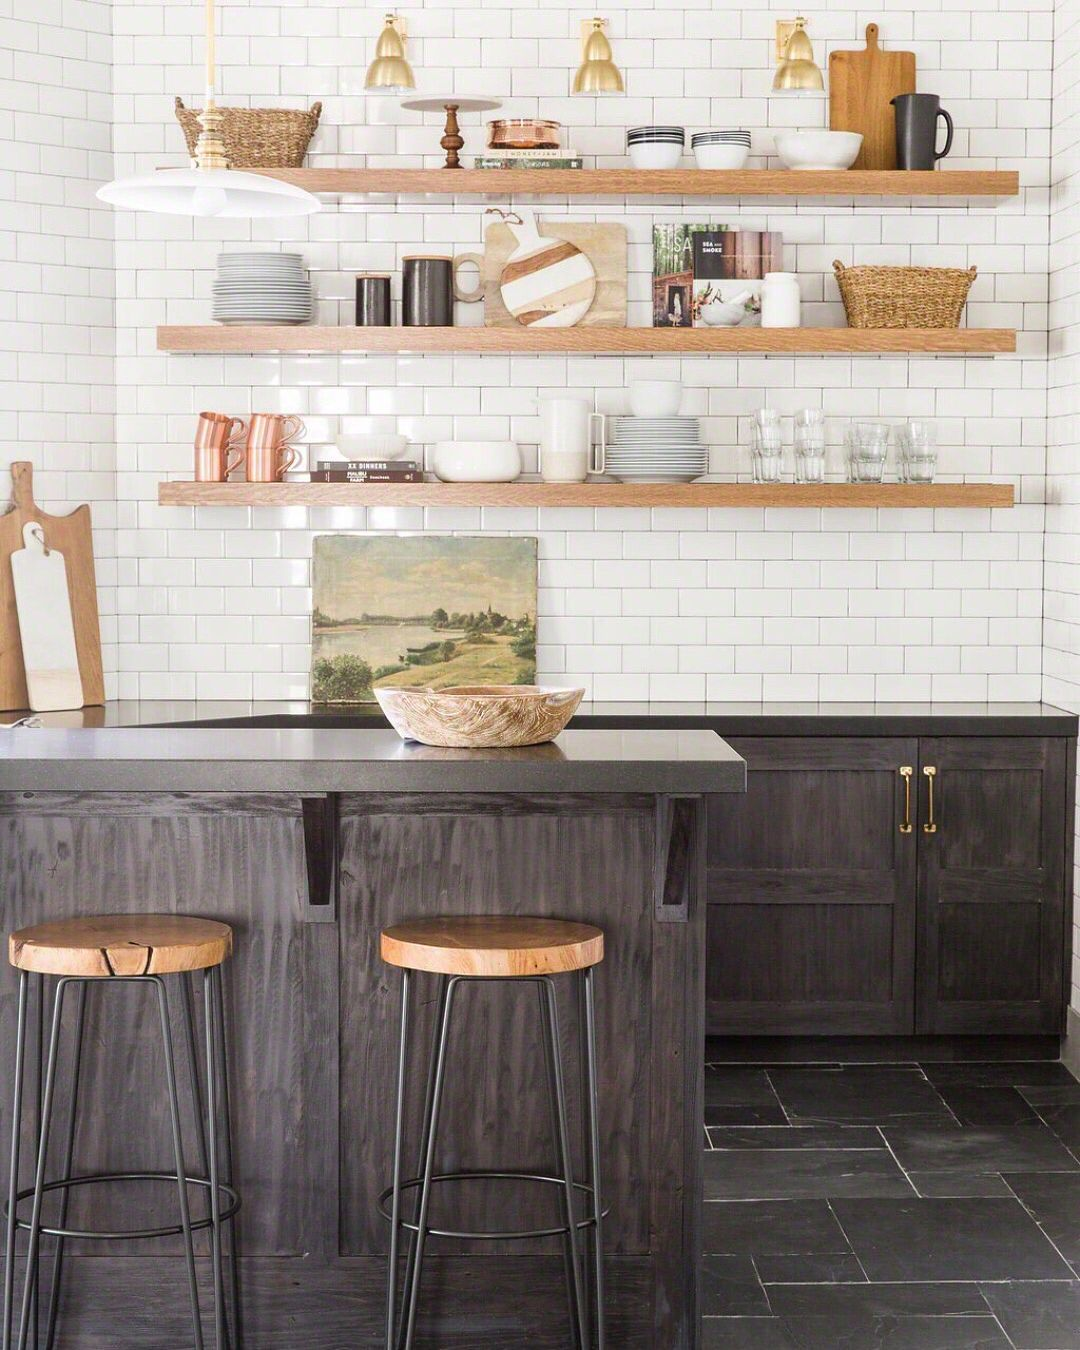 Love Little Vintage Moments Like This One In Our #canyonsproject  Kitchenette! Makes Me Even